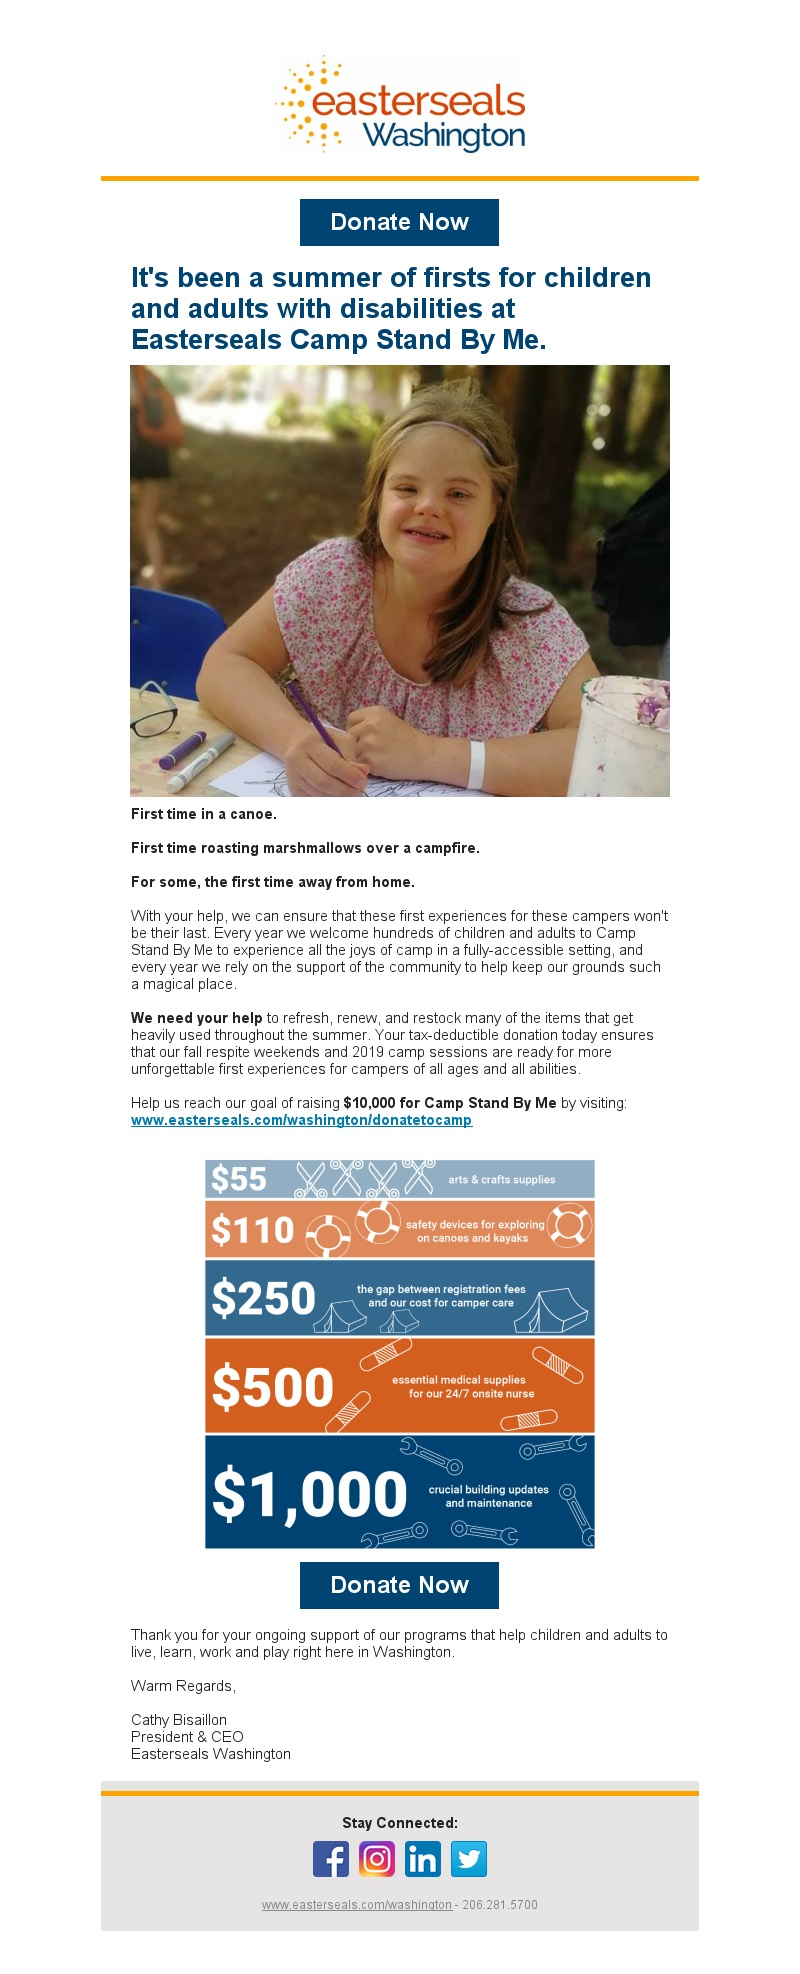 Easterseals Fundraising Campaign